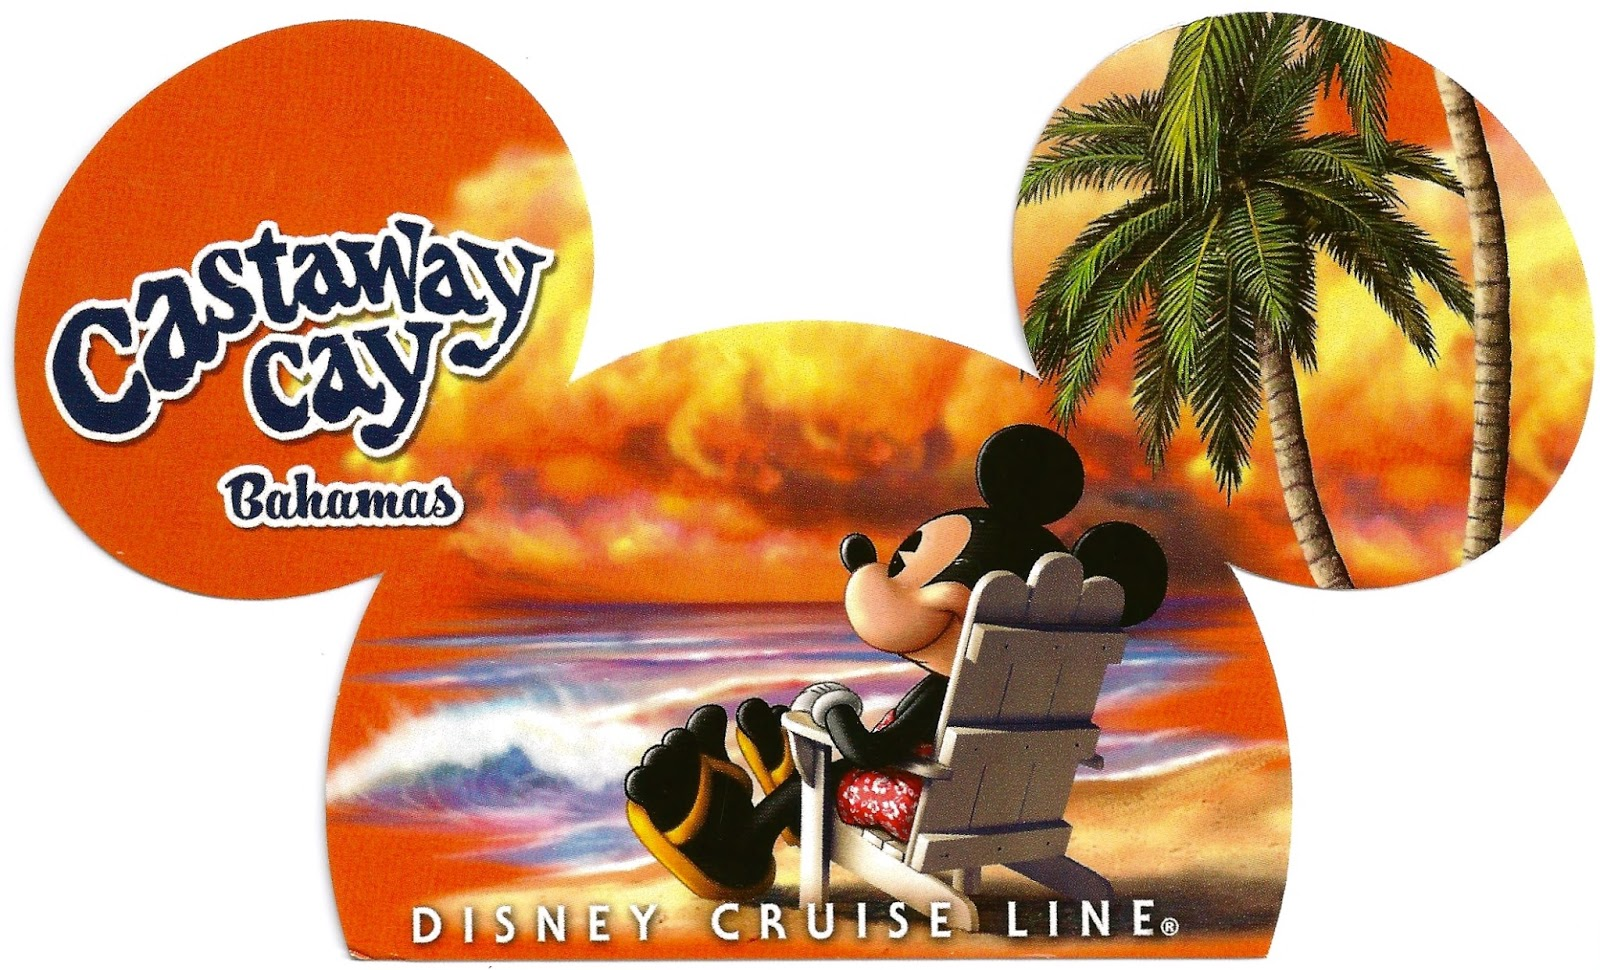 Everything You Need to Know About Castaway Cay | Disney ... |Castaway Cay Disney Cruise Line